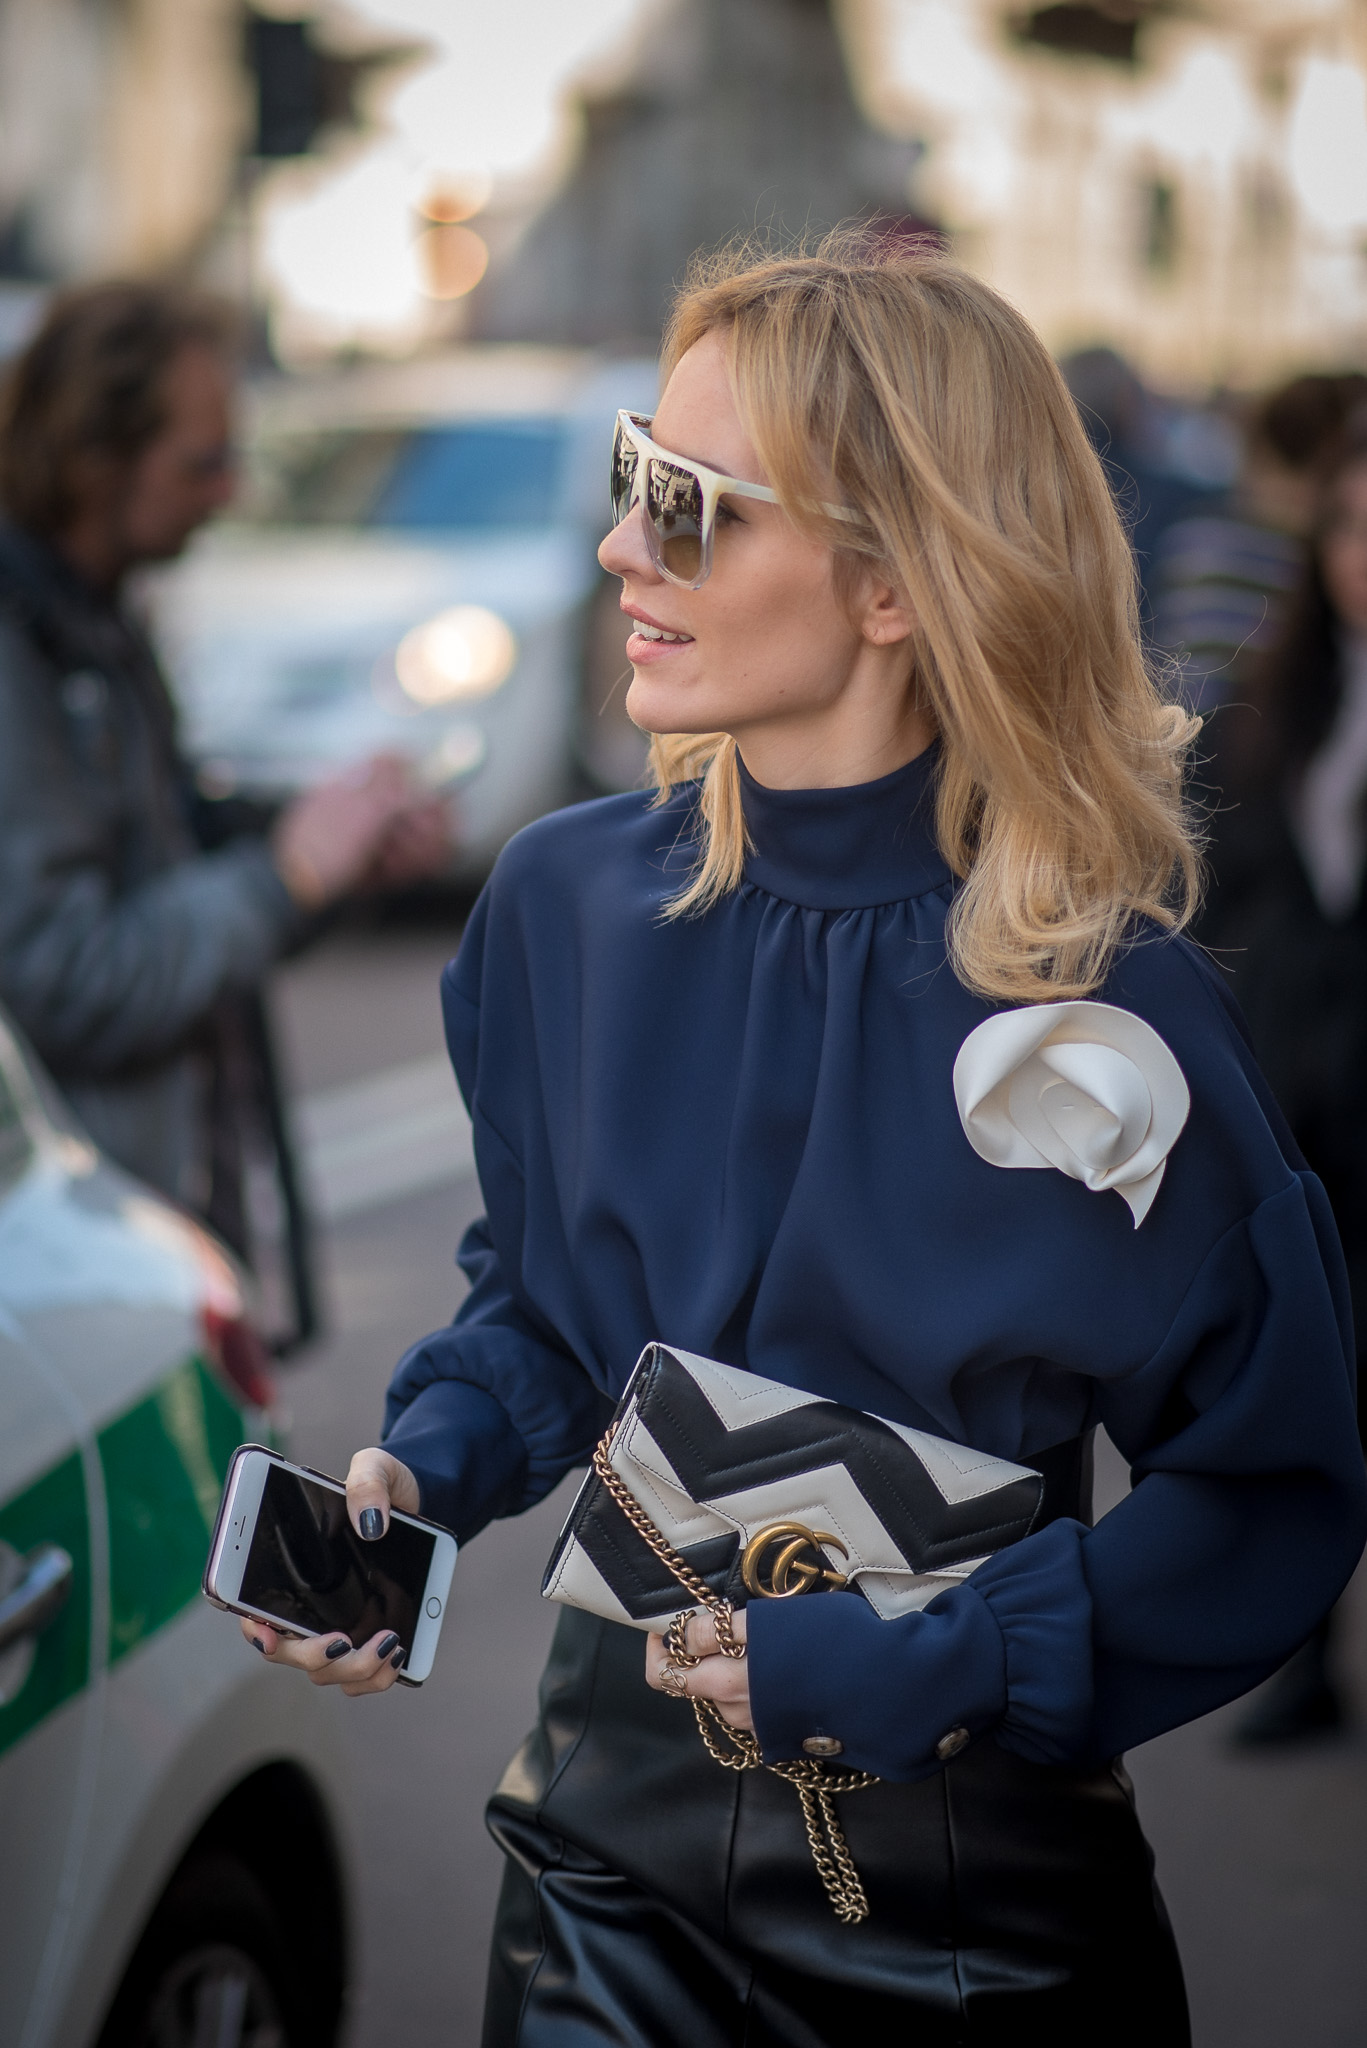 Viktoria Rader_Street Style Moments_Trussardi_Milan Fashion Week_February 26th 2017_Photography Annika Lagerqvist_www.annikasomething.com